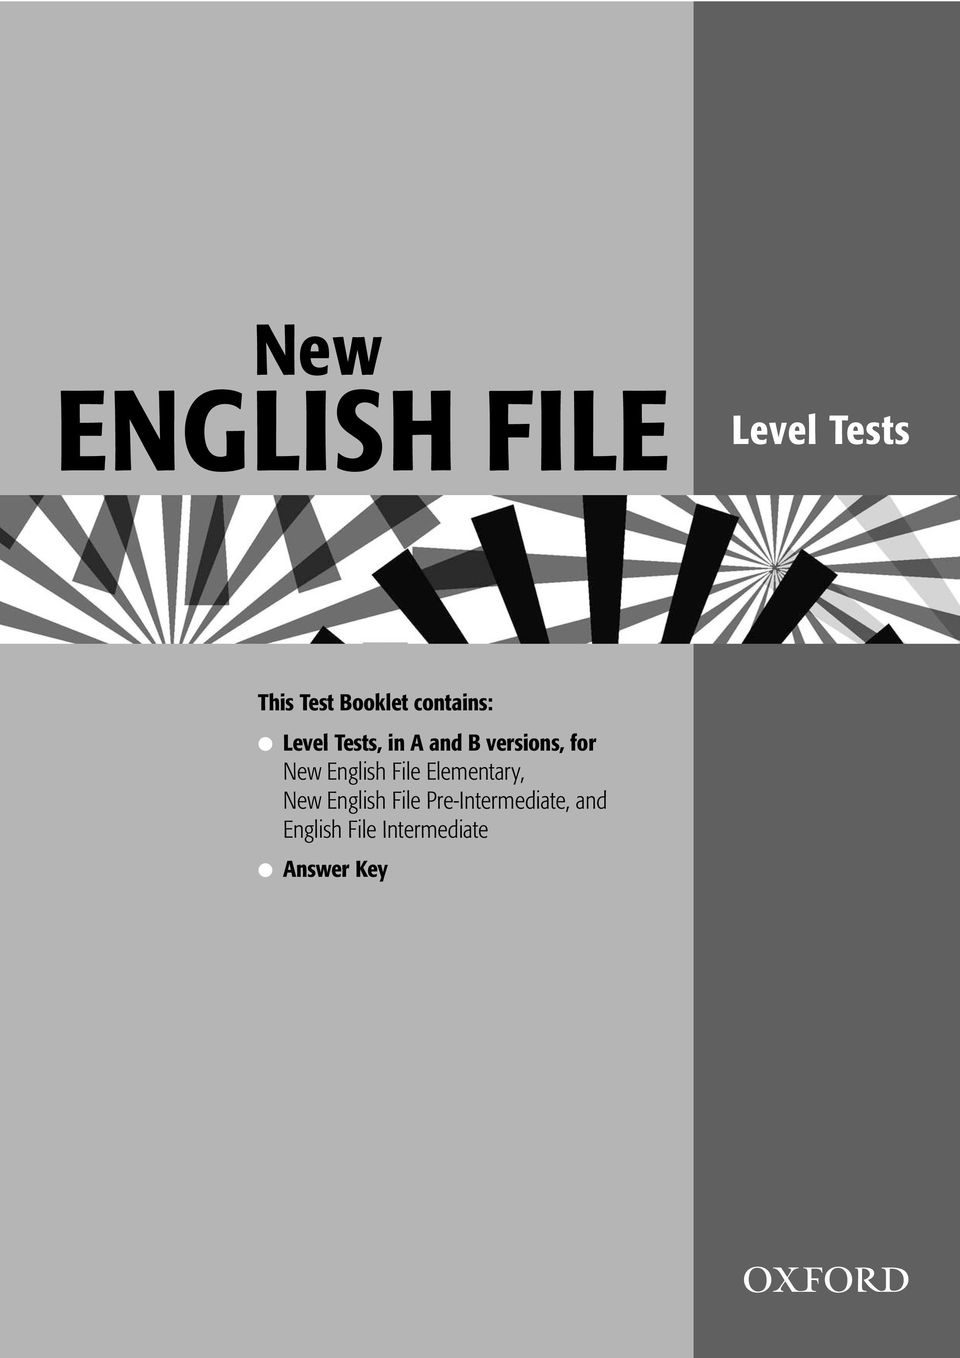 versions, for New English File Elementary, New English